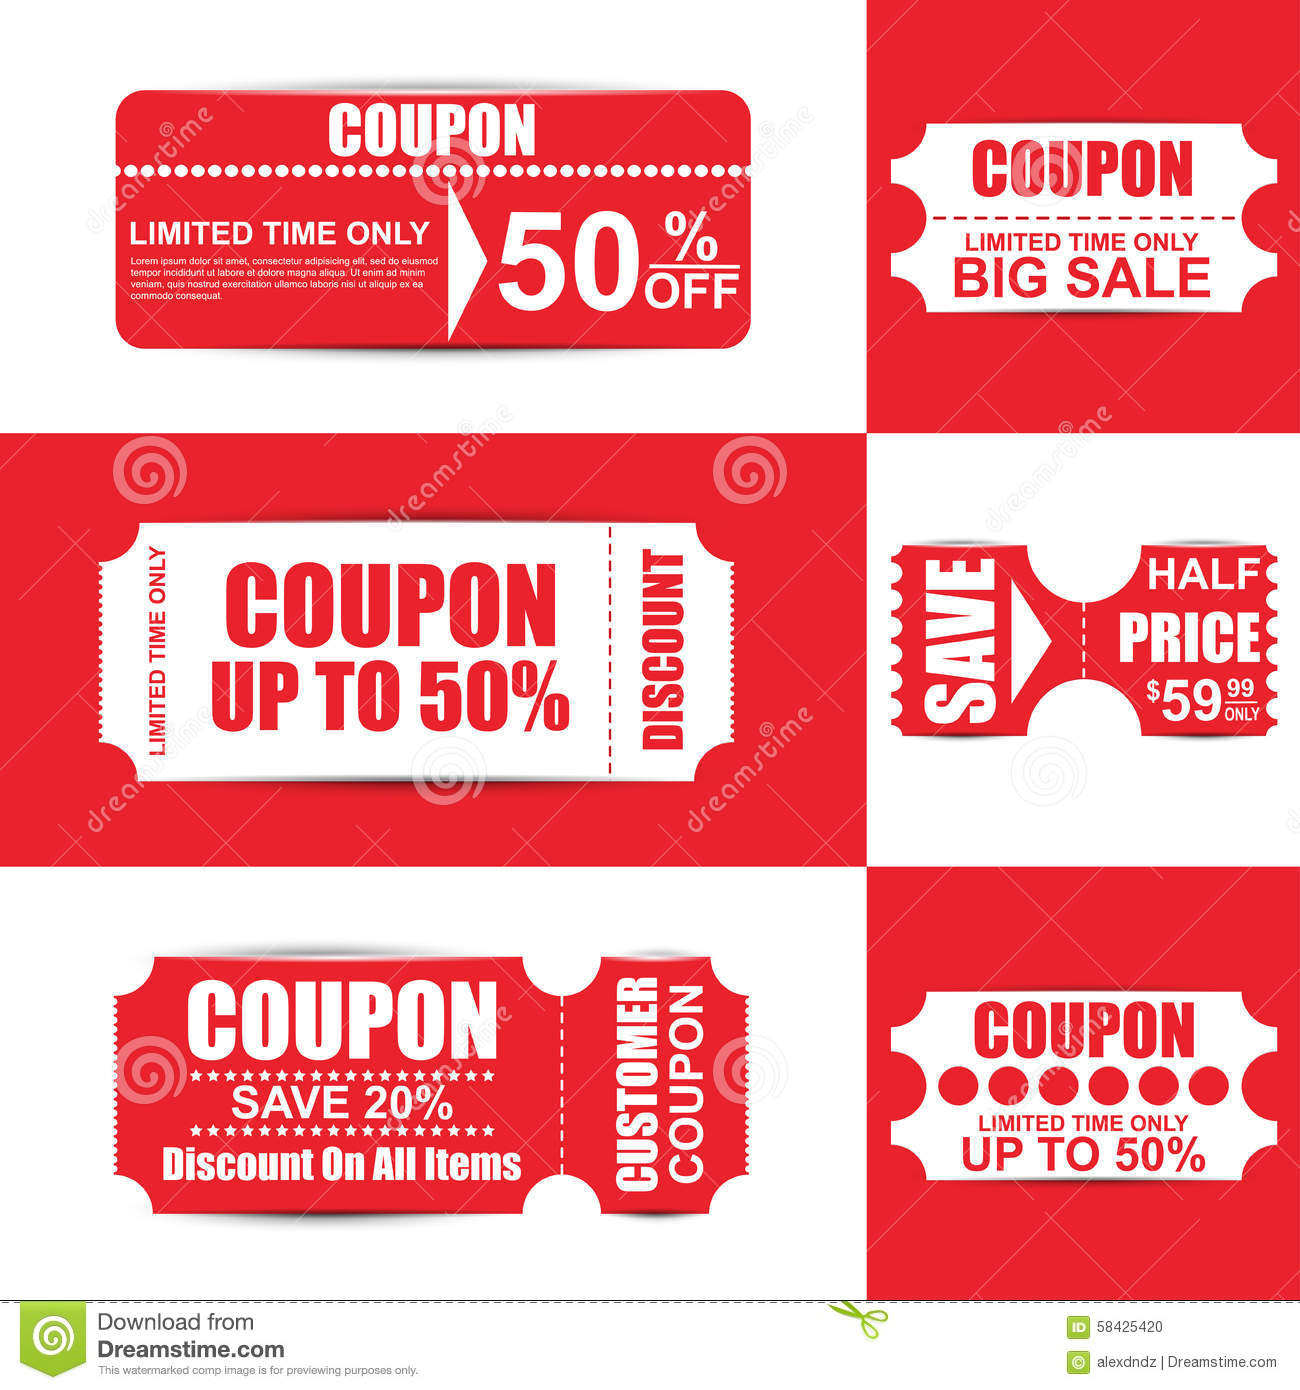 We're a coupon clipping service for those who want the best deals from the redplum, SmartSource, or P&G Sunday newspaper inserts.